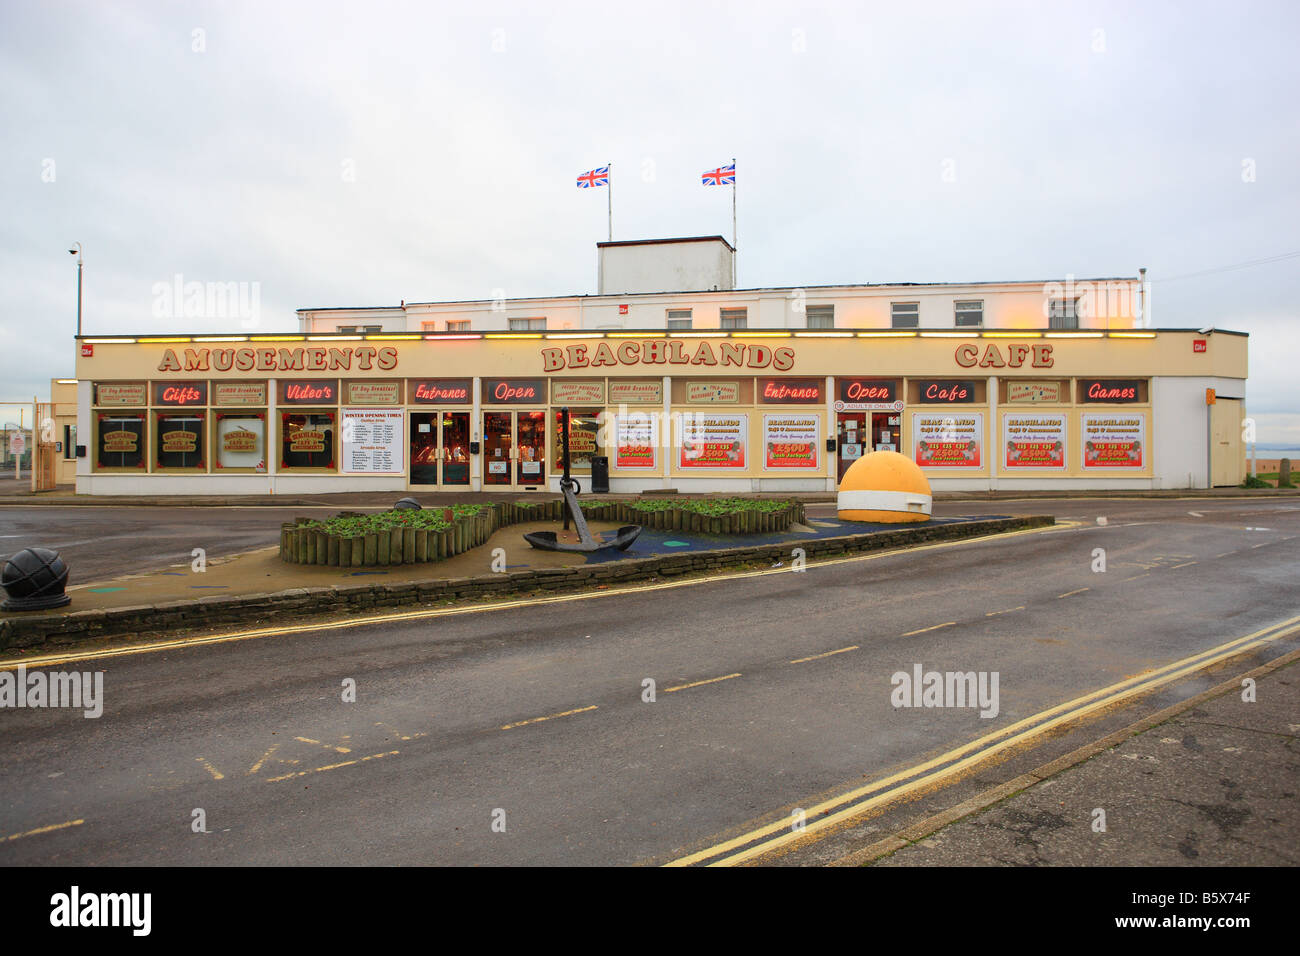 Beachlands Amusement Arcade and Cafe on Hayling Island - Stock Image